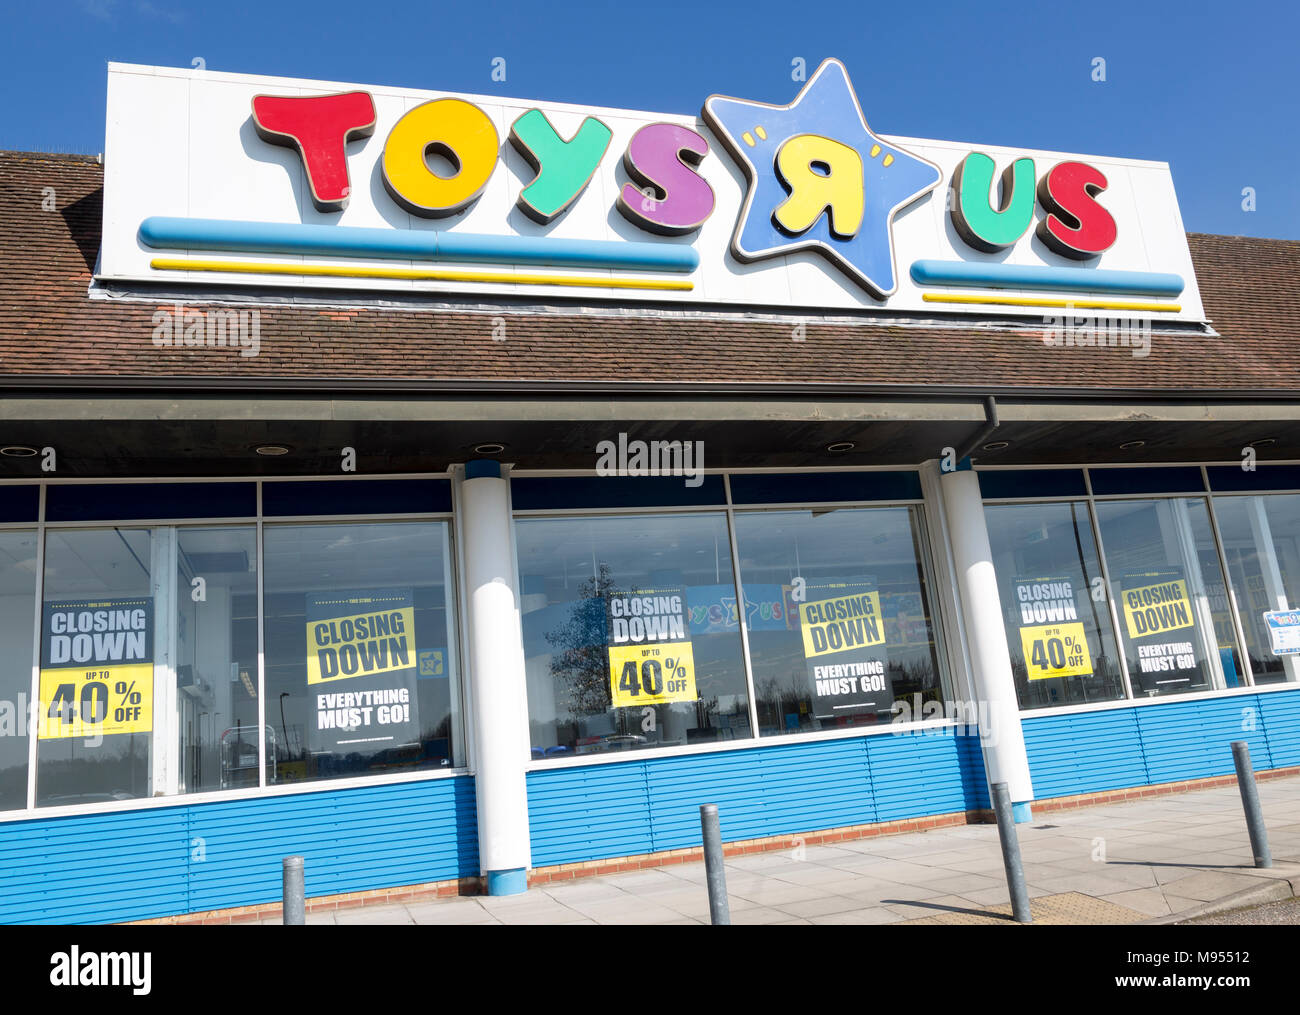 Toys R Us store shop closing down, Copdock, Ipswich, Suffolk, England, UK 21 Match 2018 - Stock Image